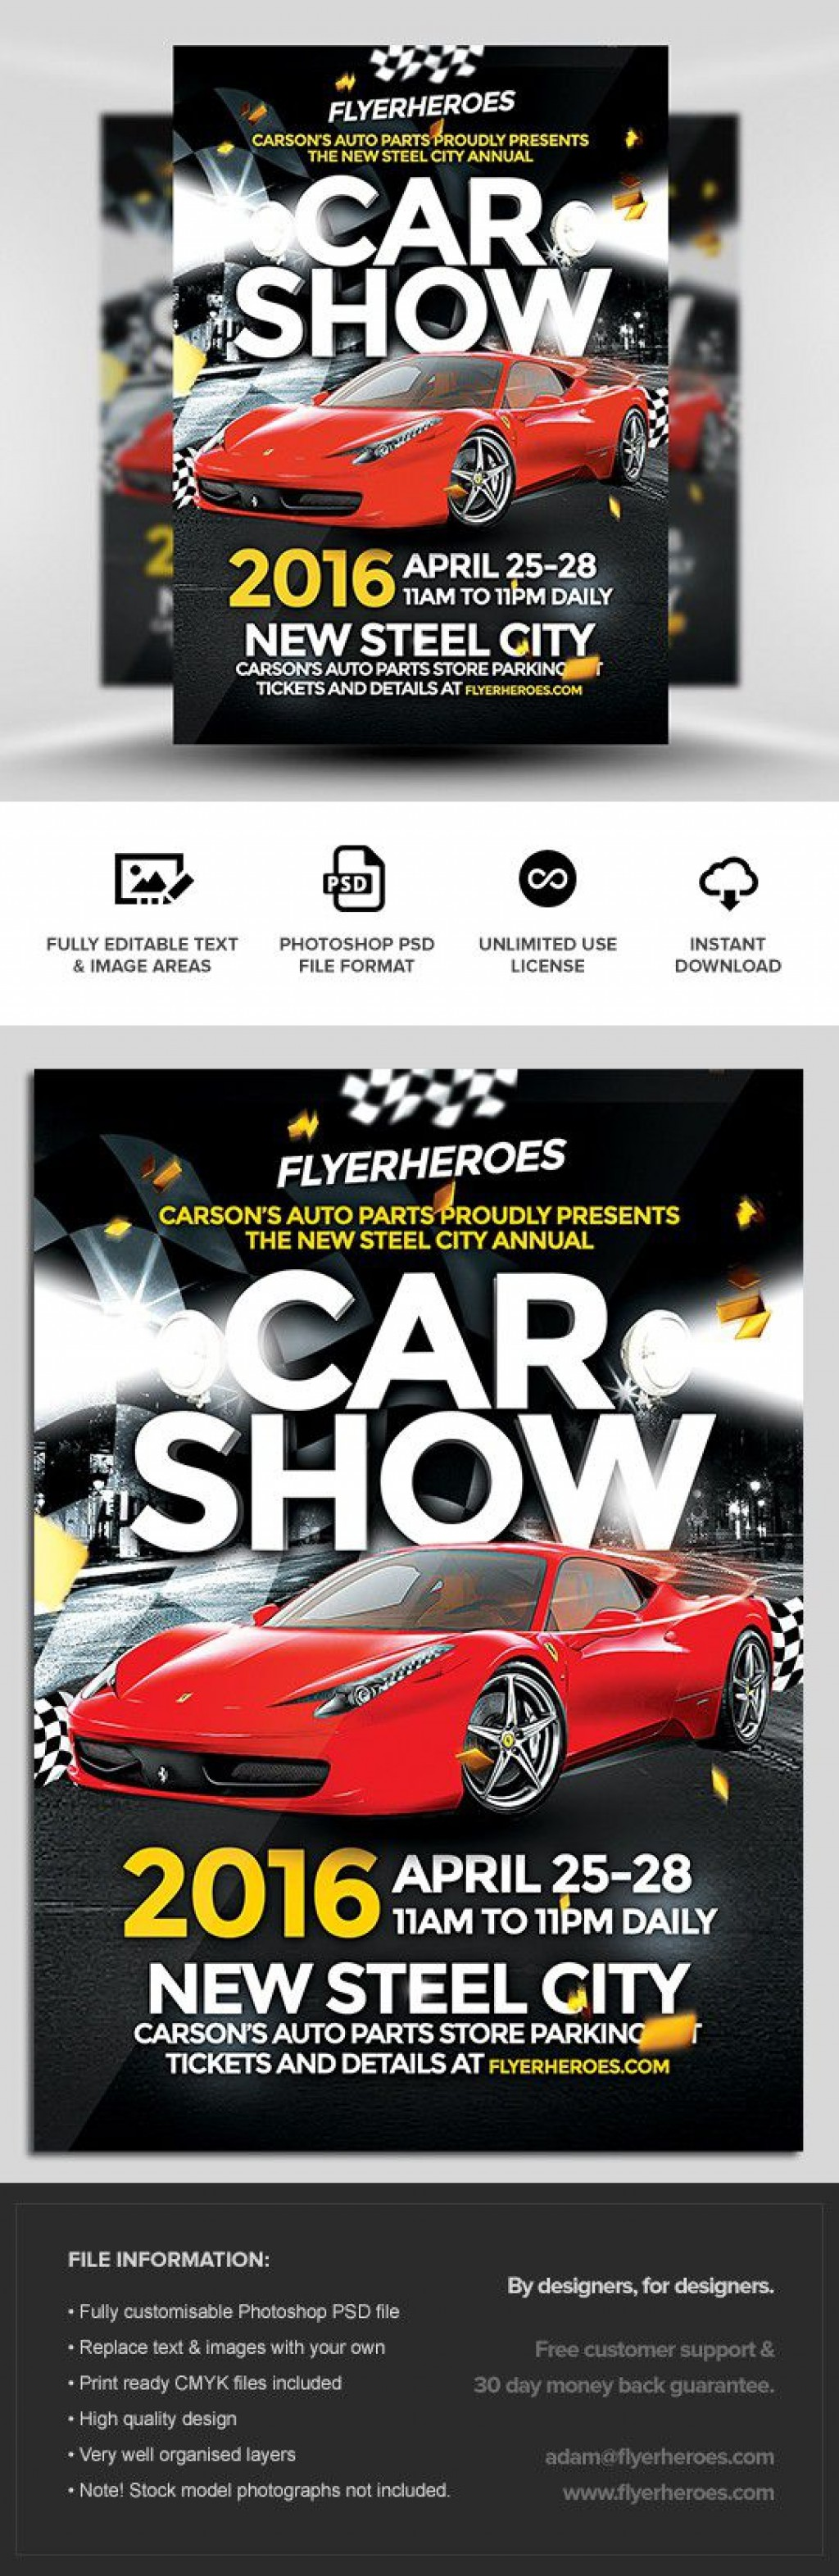 005 Frightening Free Car Show Flyer Template Inspiration  Psd And BikeLarge